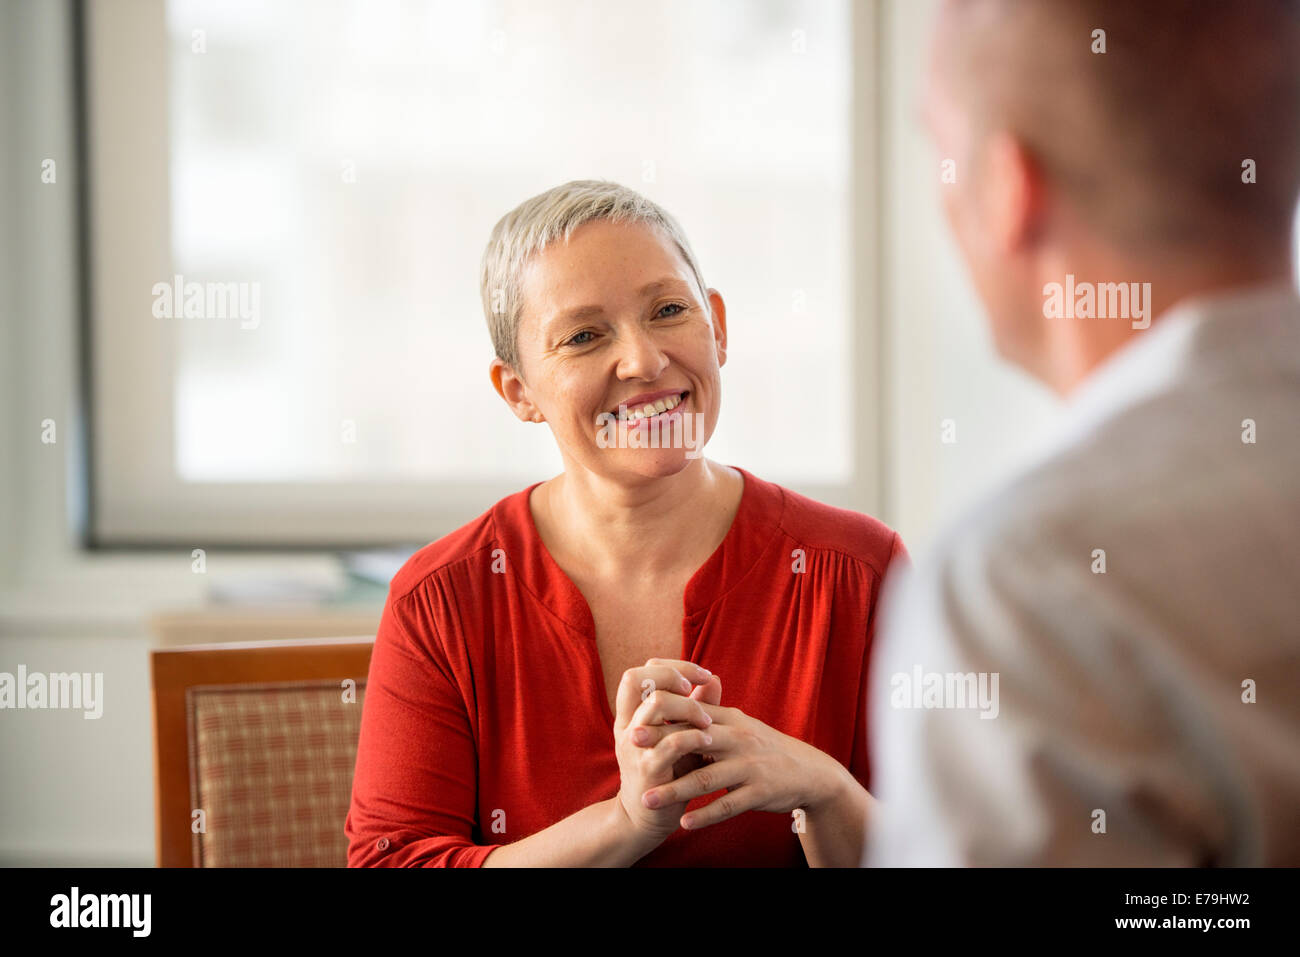 A woman with her hands clasped smiling at a man. - Stock Image